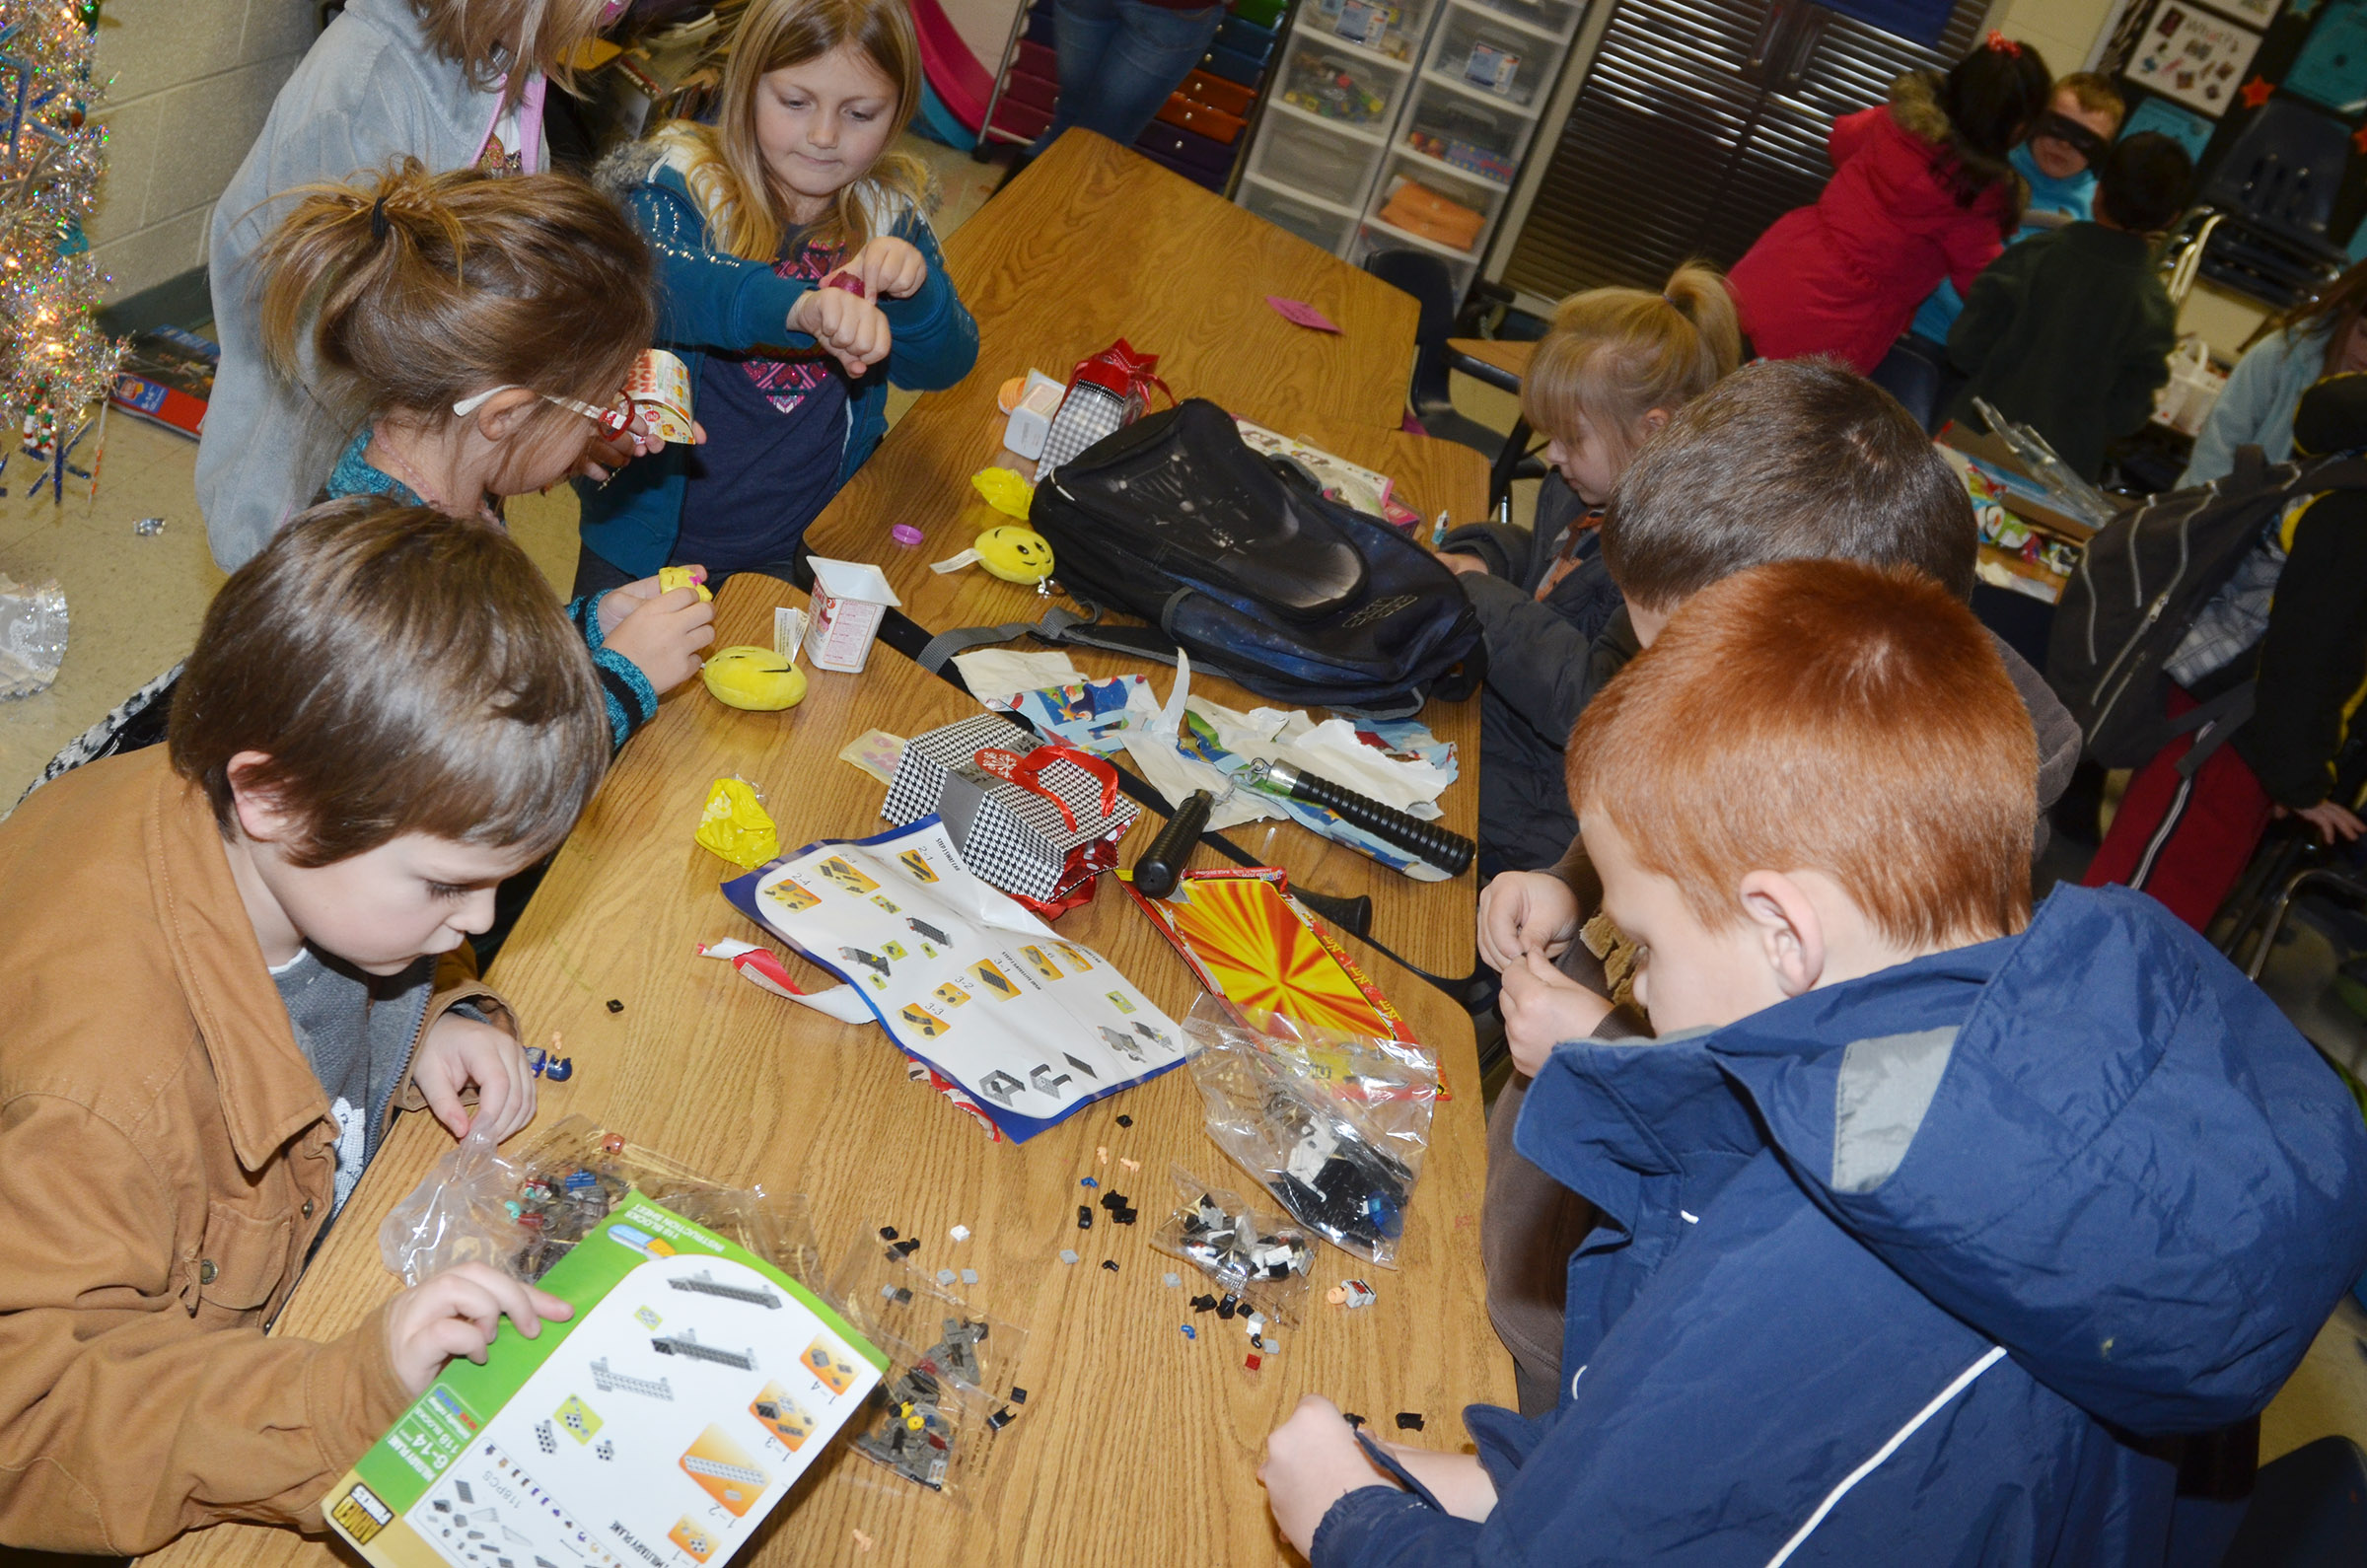 CES first-graders play with the toys they received in their class gift exchange.